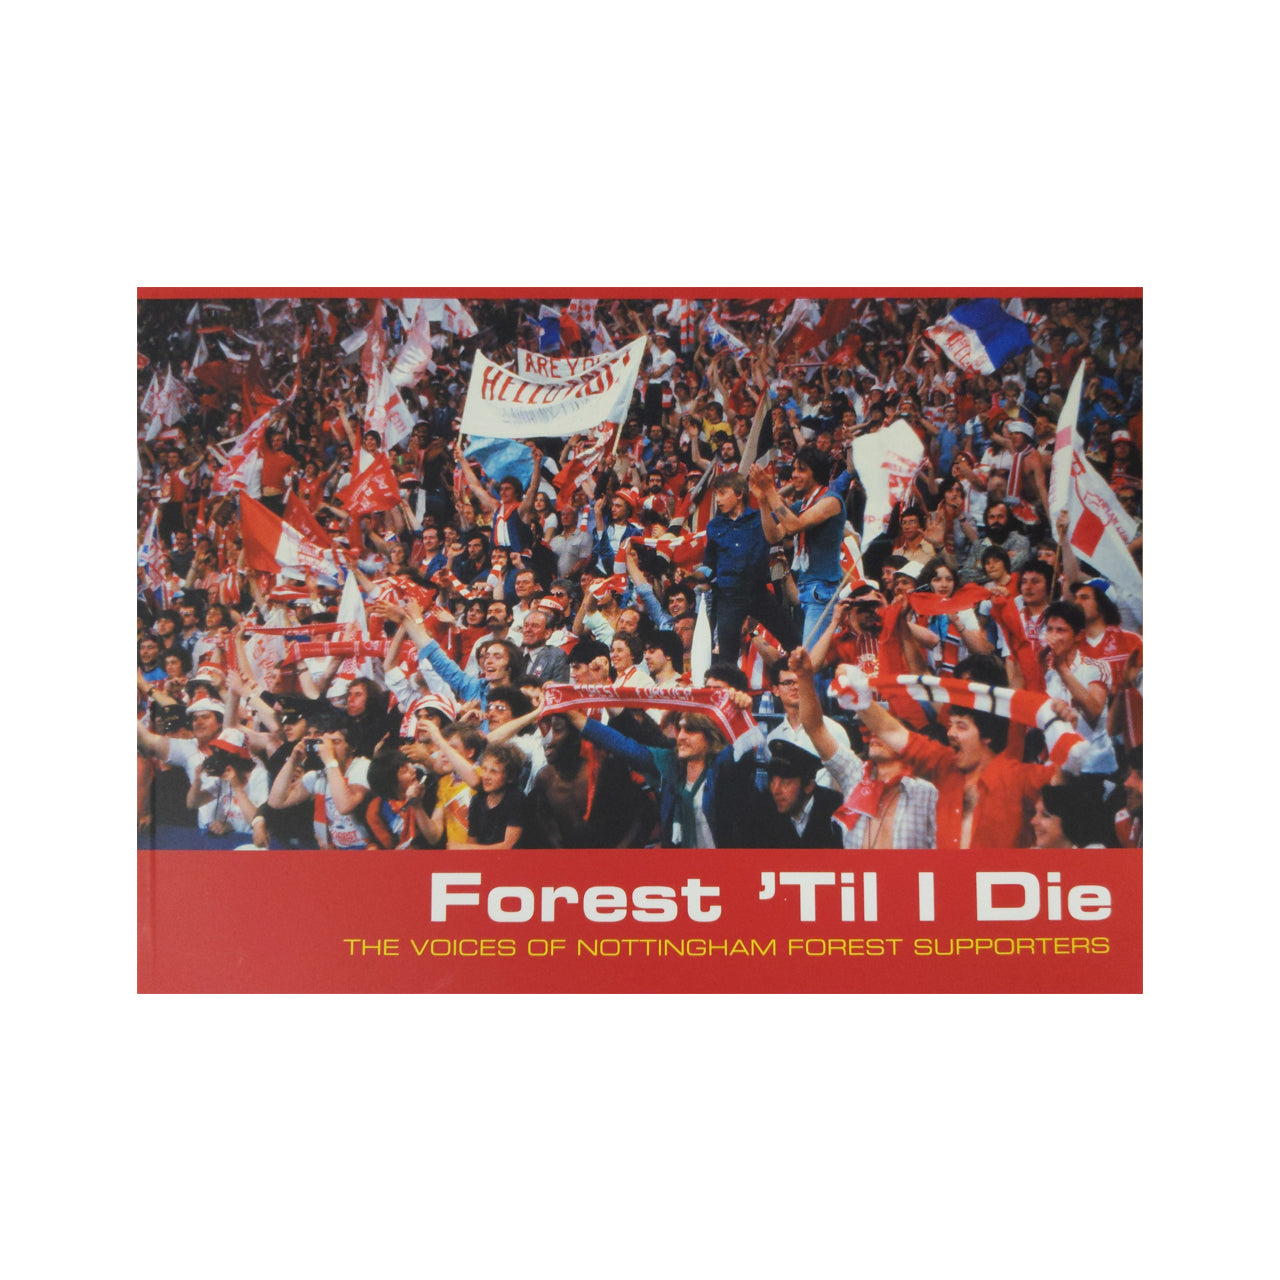 NFFC Forest Till I Die Book - Nottingham Forest